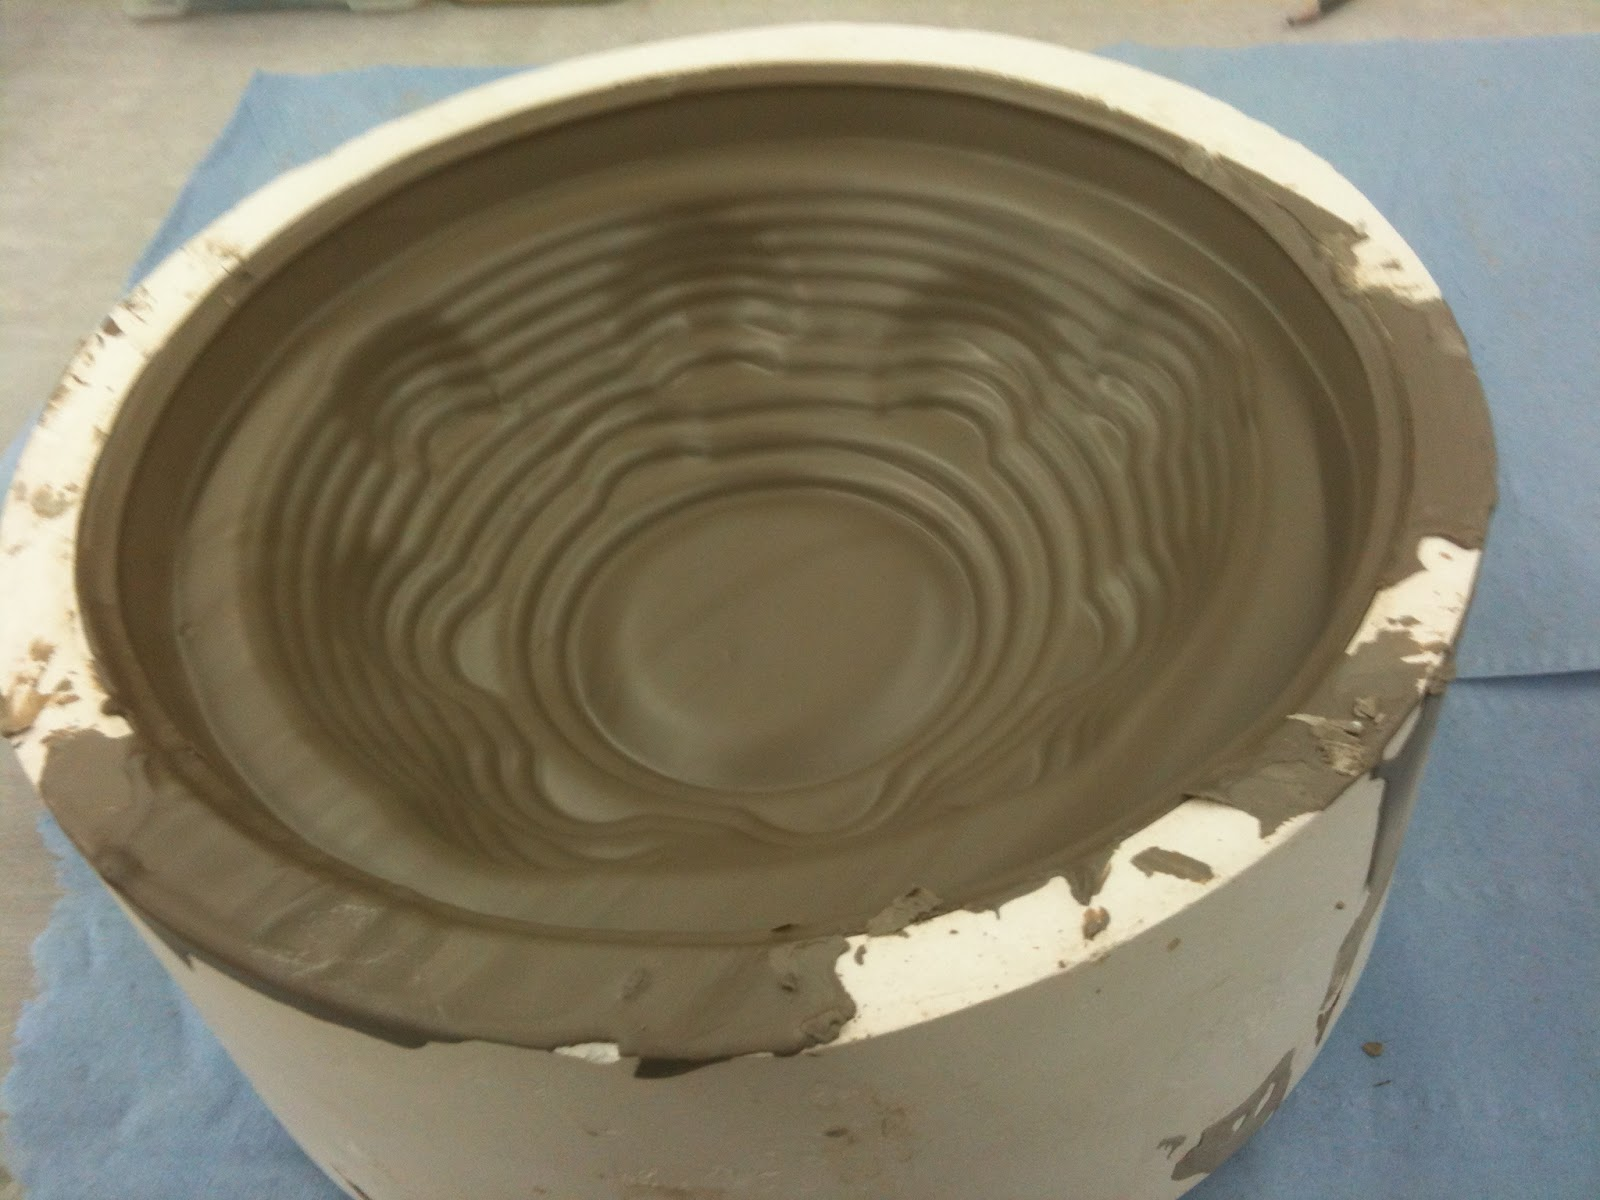 Jade's Design Journal: Bubble Pot and Low Plate